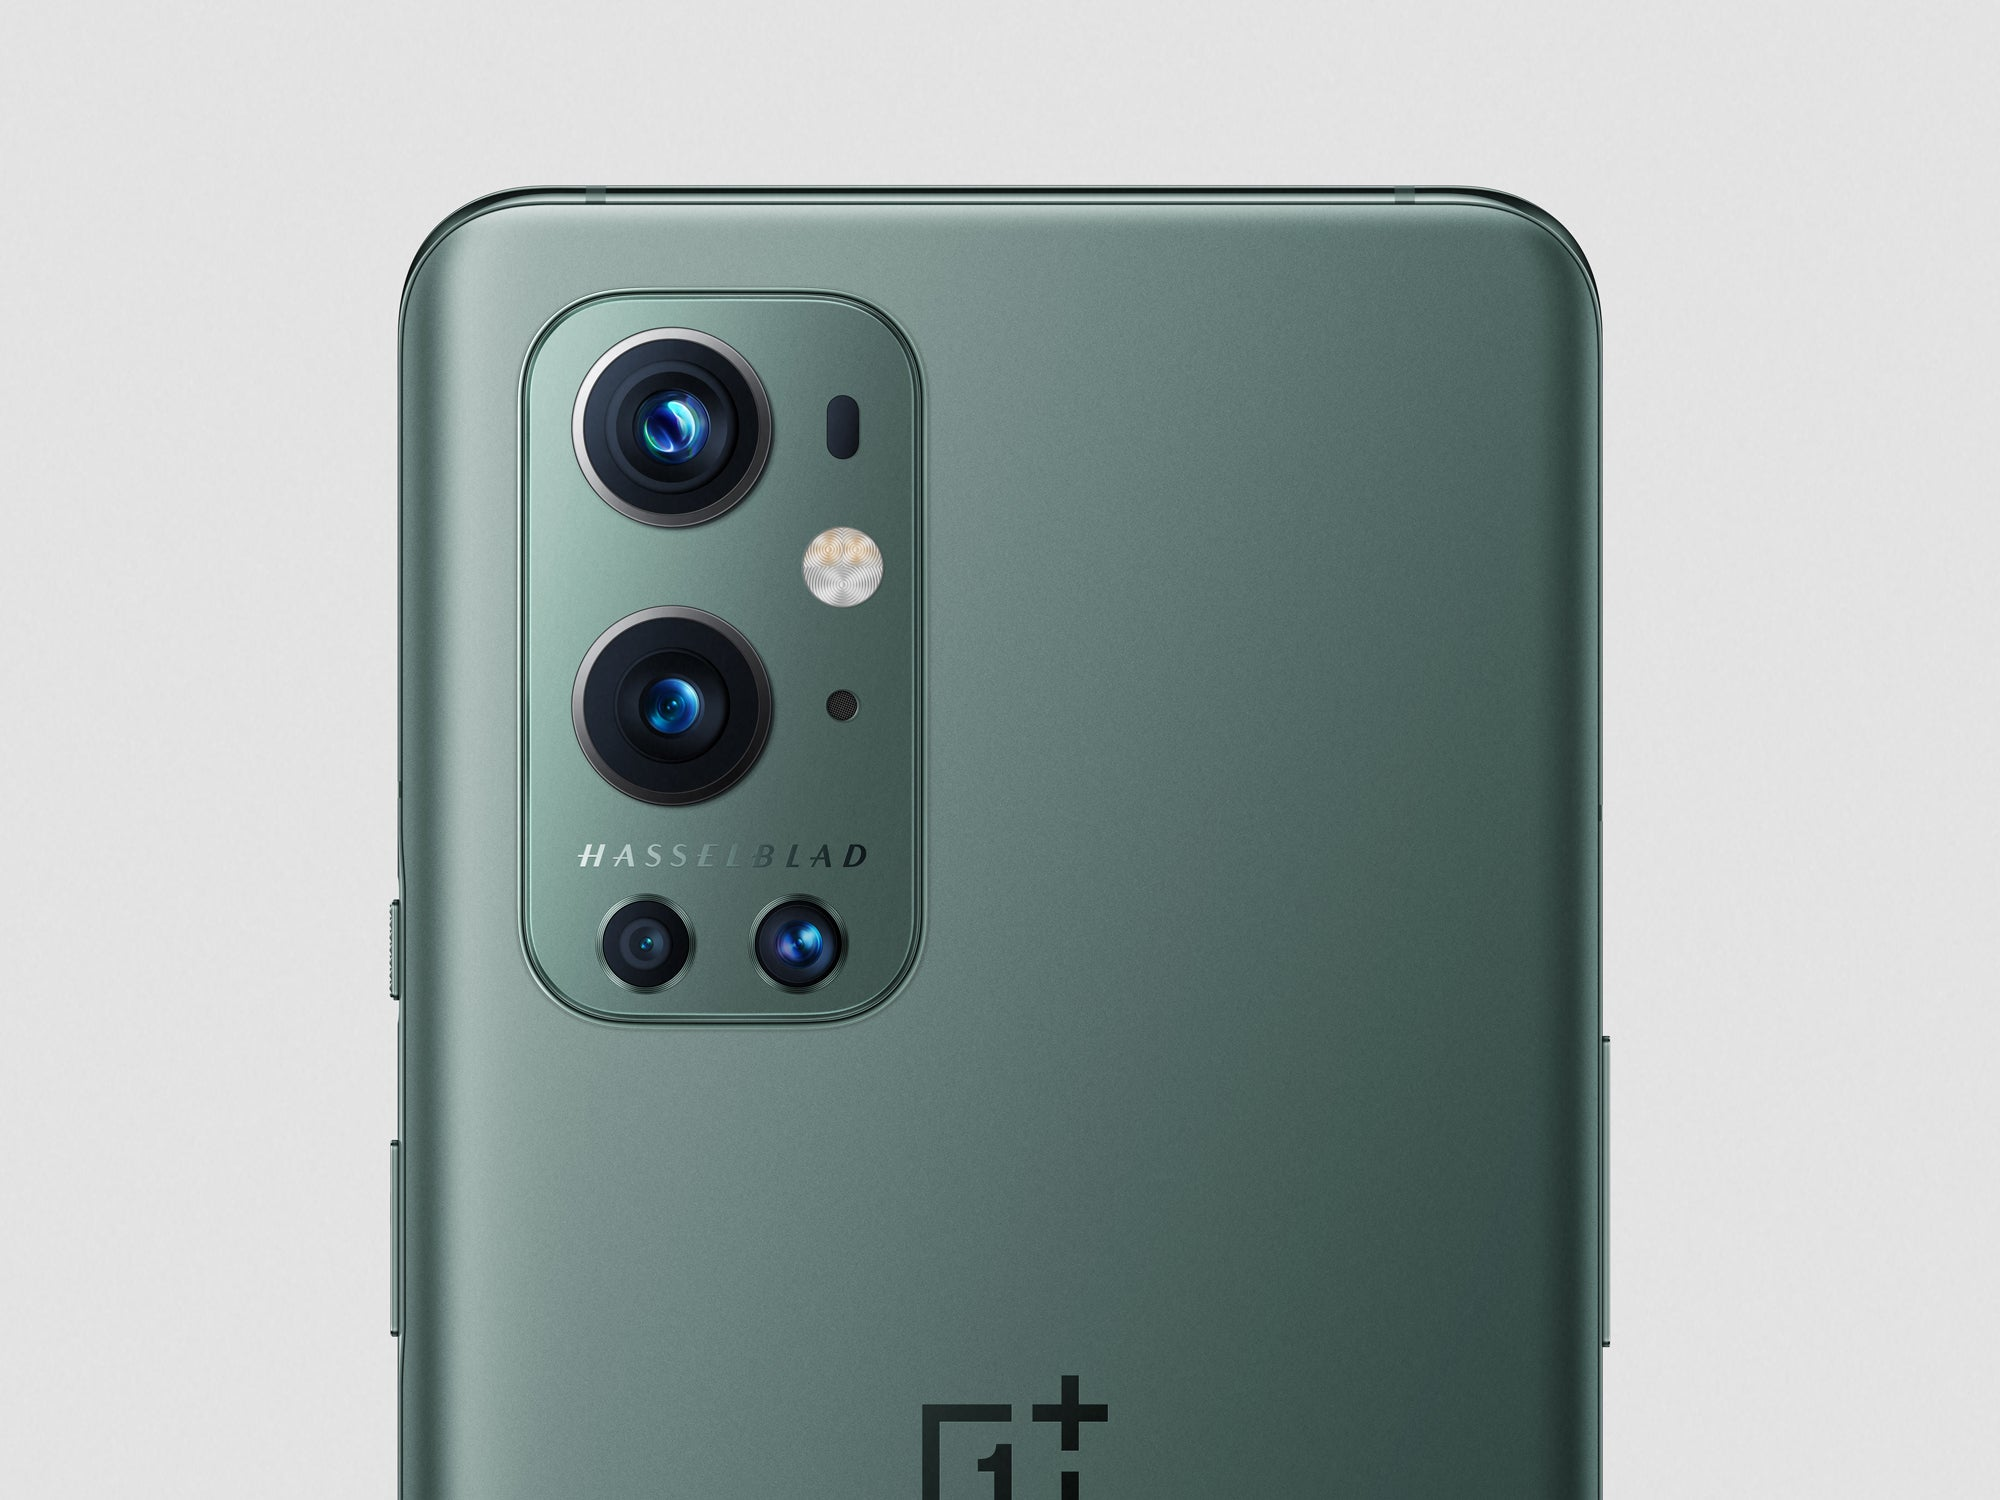 A close-up of the OnePlus 9 Pro cameras on white background.